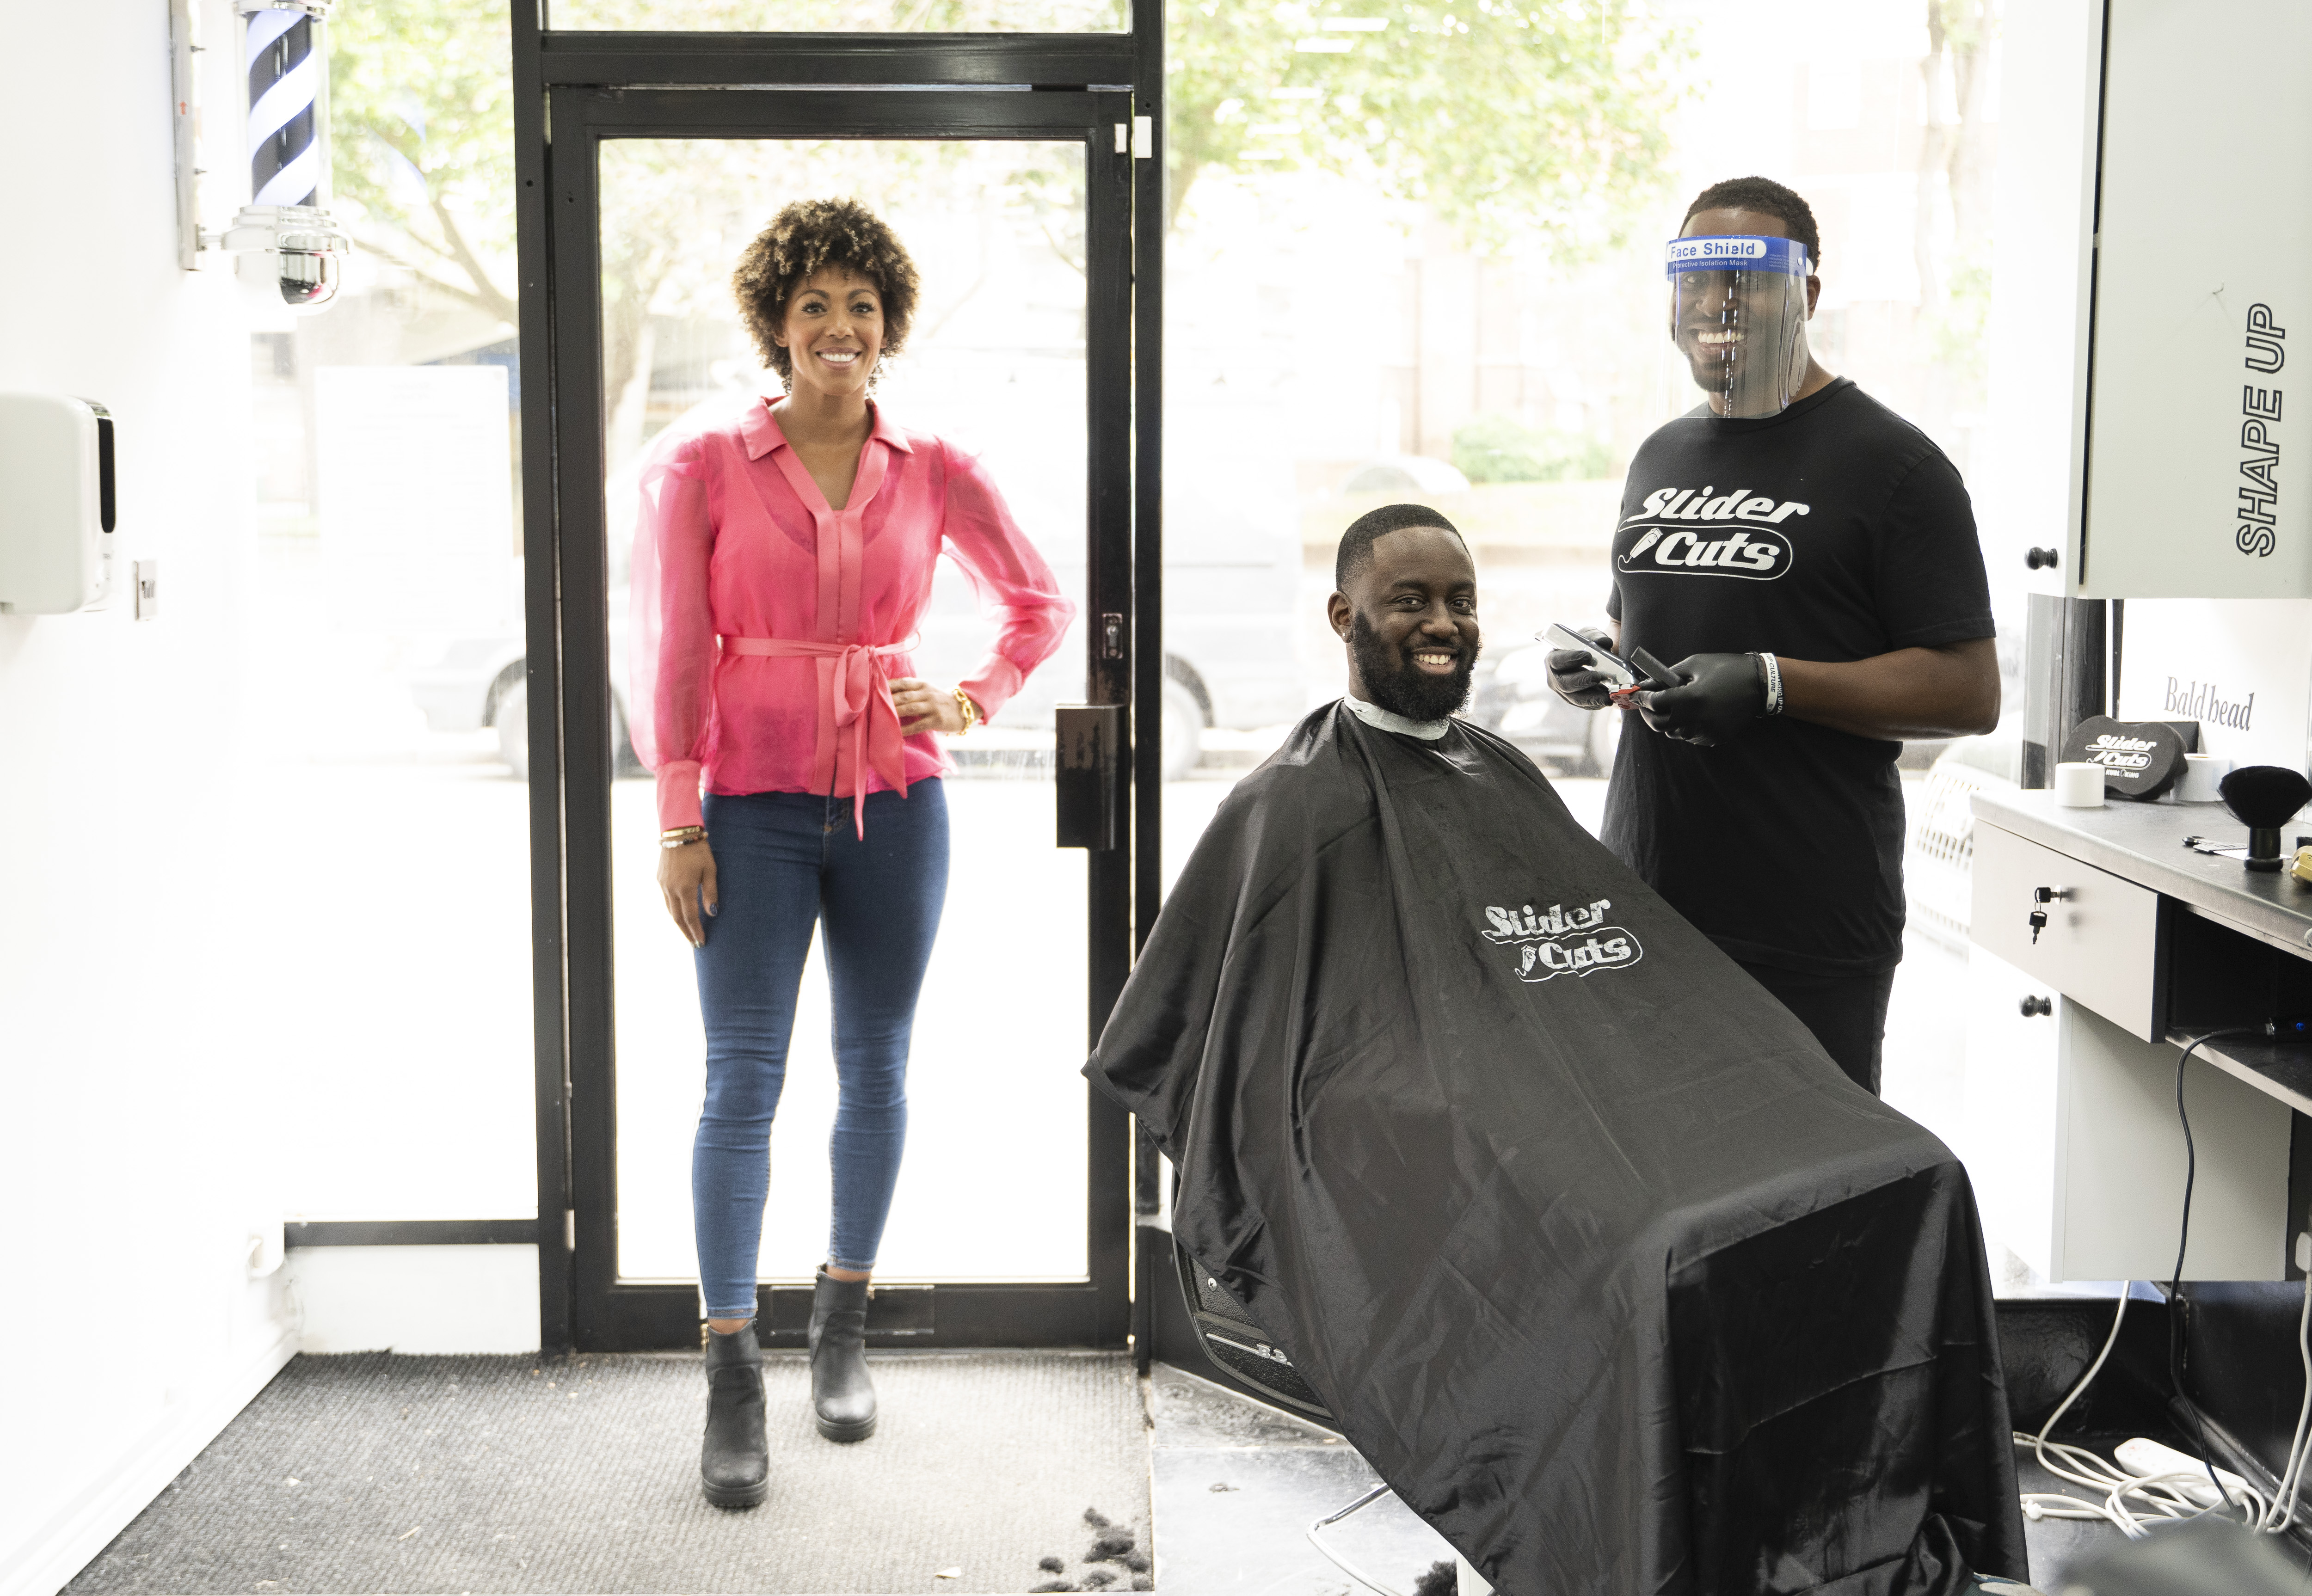 ESSENTIAL ADVICE ON STAYING SAFE AHEAD OF BARBERSHOPS AND HAIR SALONS REOPENING THIS WEEKEND